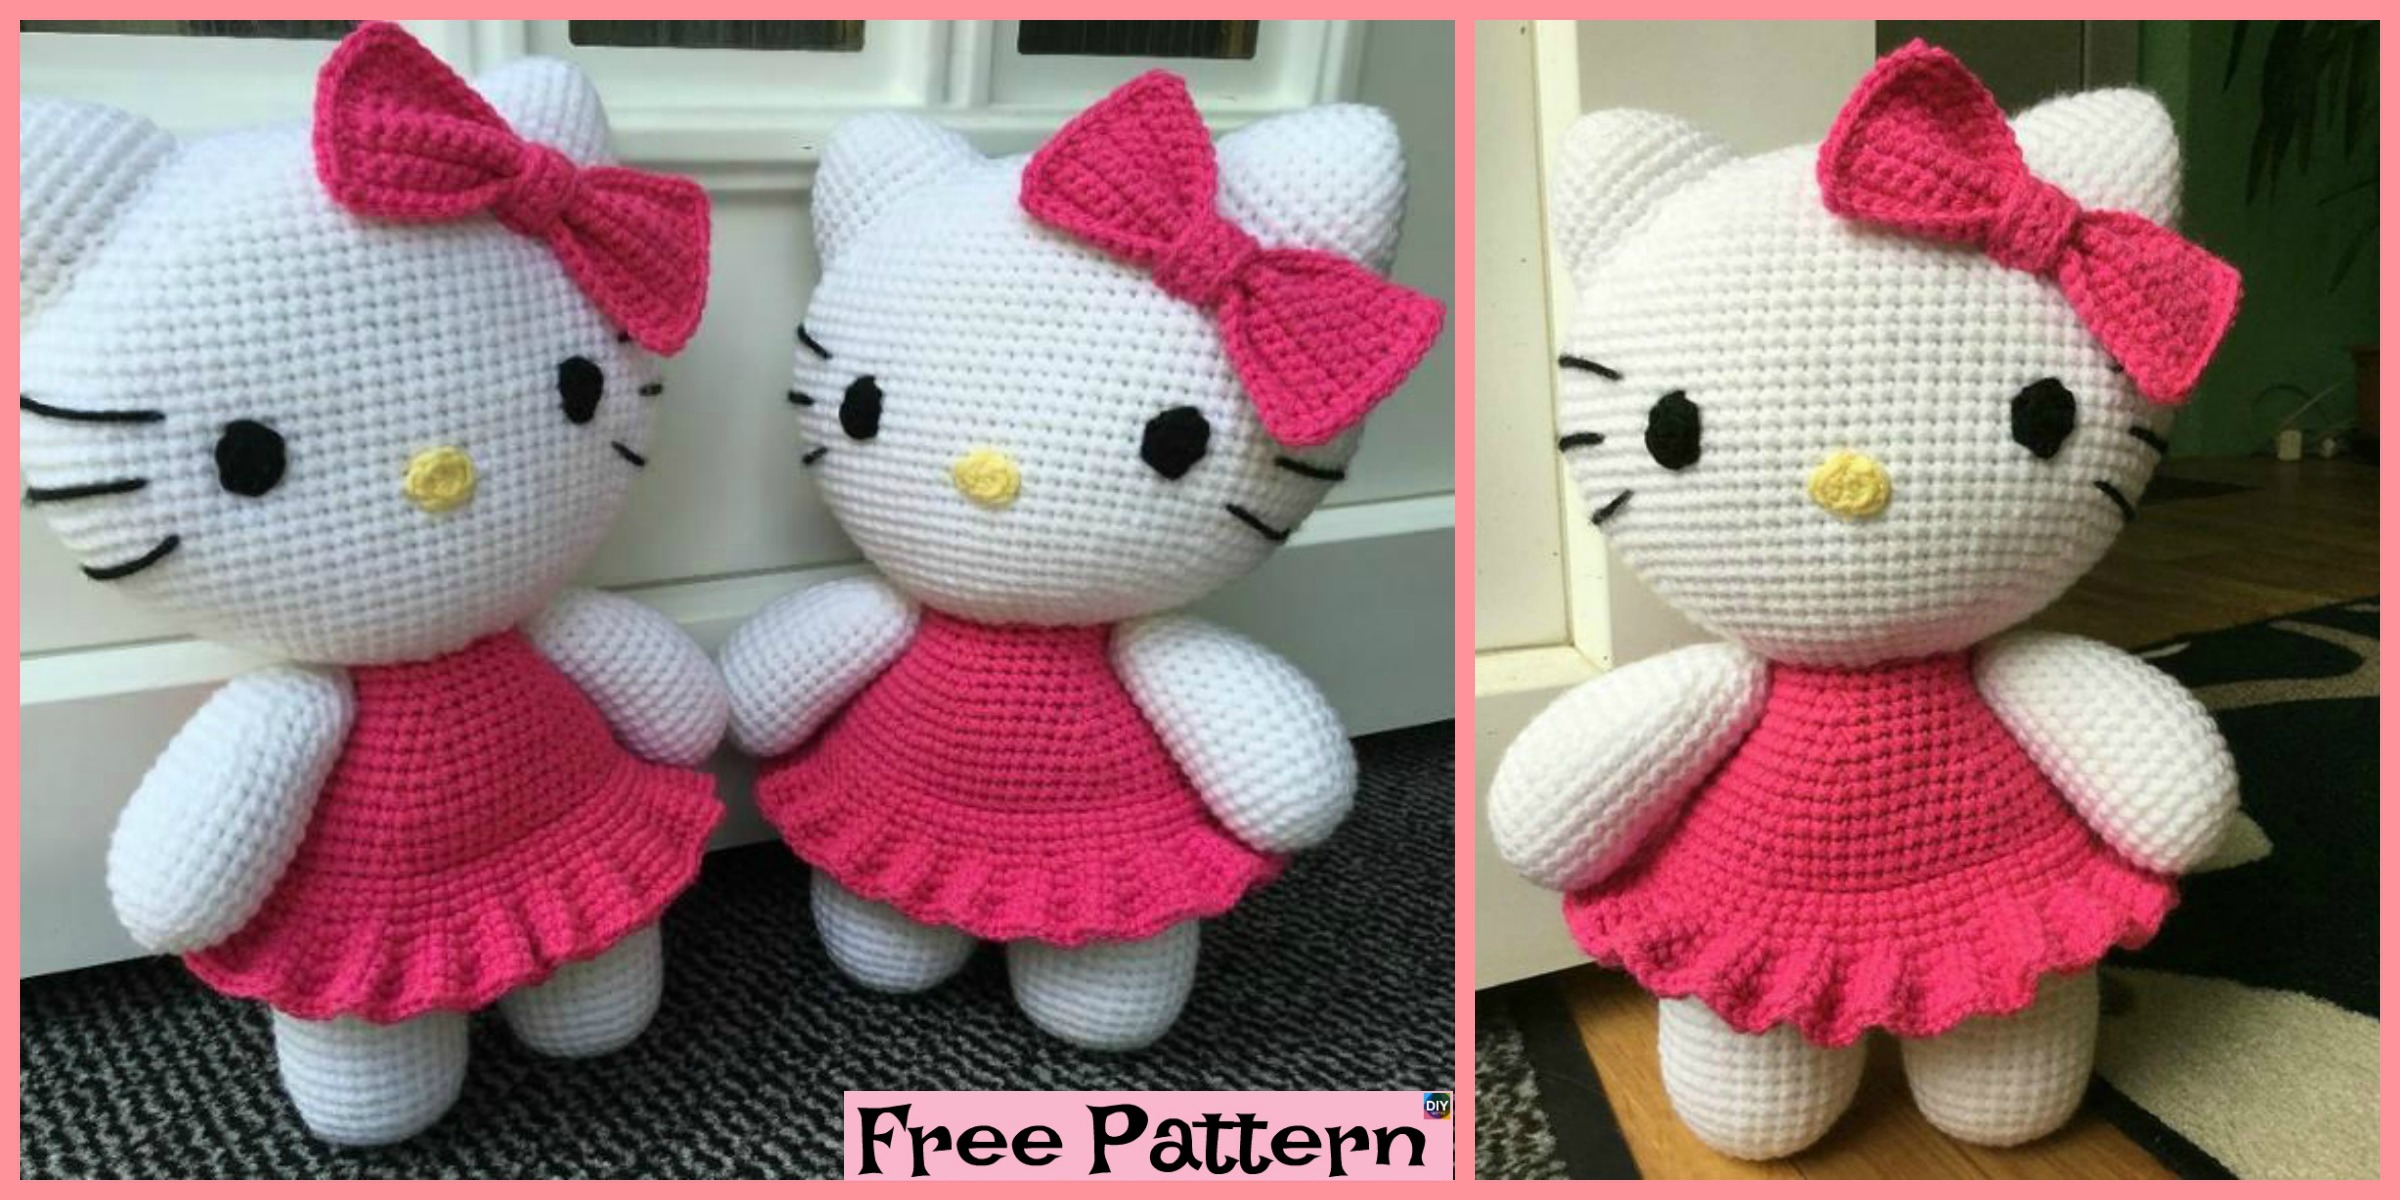 Adorable Crochet Hello Kitty – Free Pattern